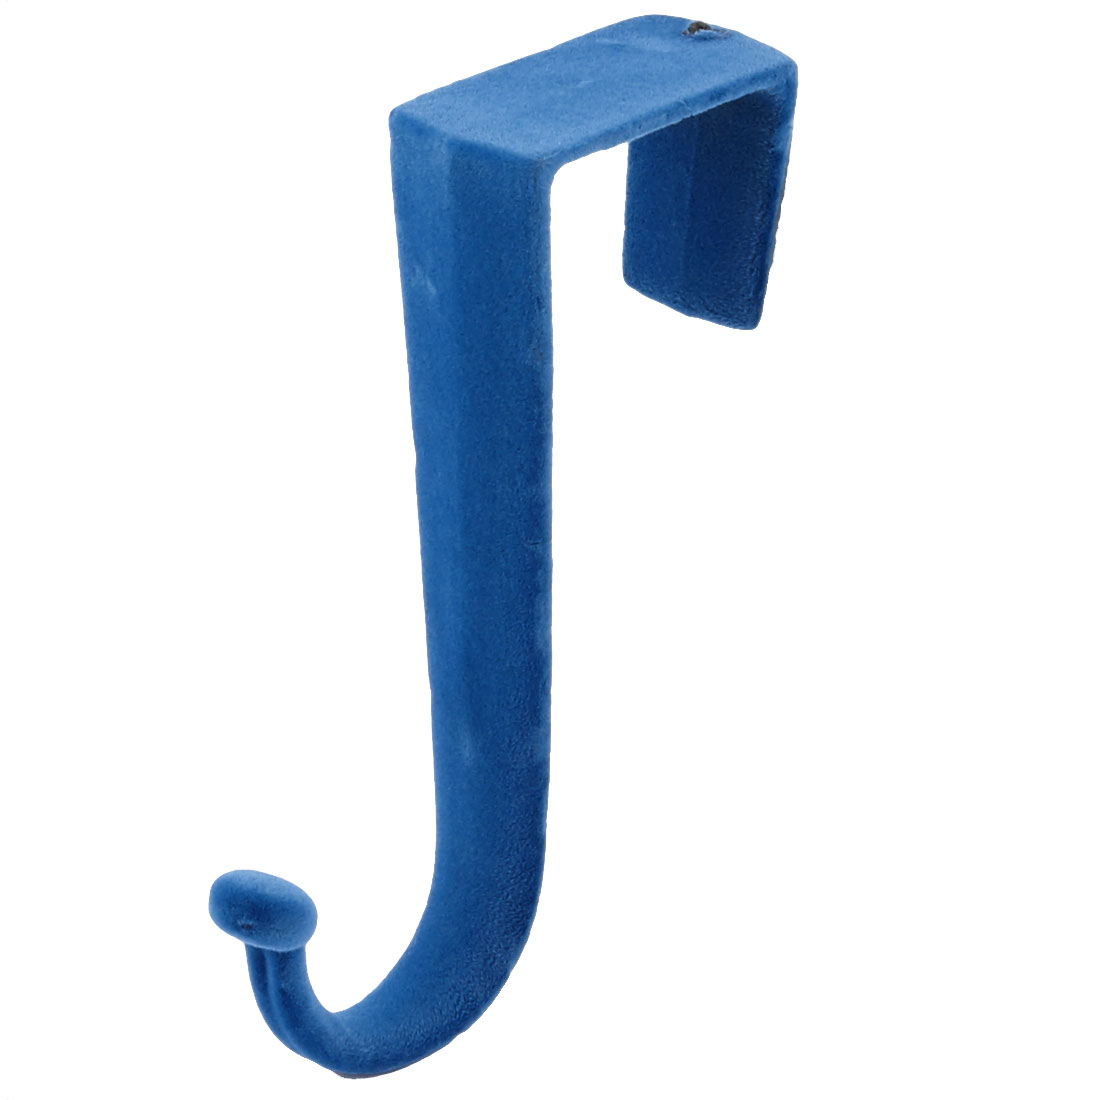 Household Plastic Z Shaped Over Door Hooks Clothes Towel Hanger Holder Blue